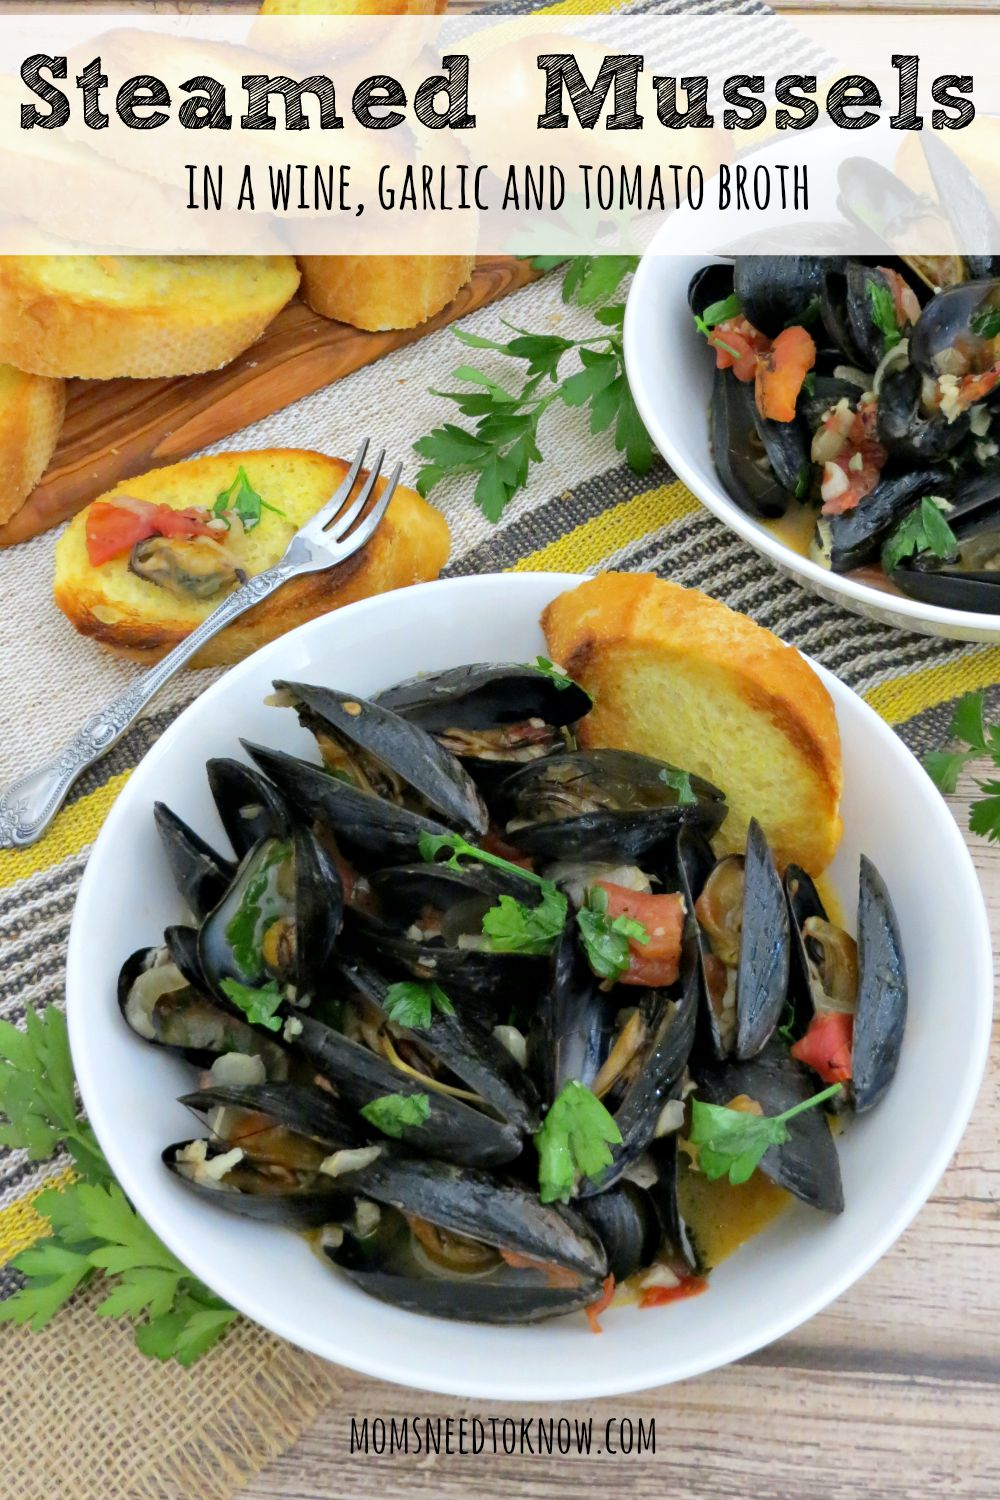 These steamed mussels are made in a delicious broth made with wine, garlic and tomatoes. Perfect as an appetizer and cook up some pasta for a complete meal!